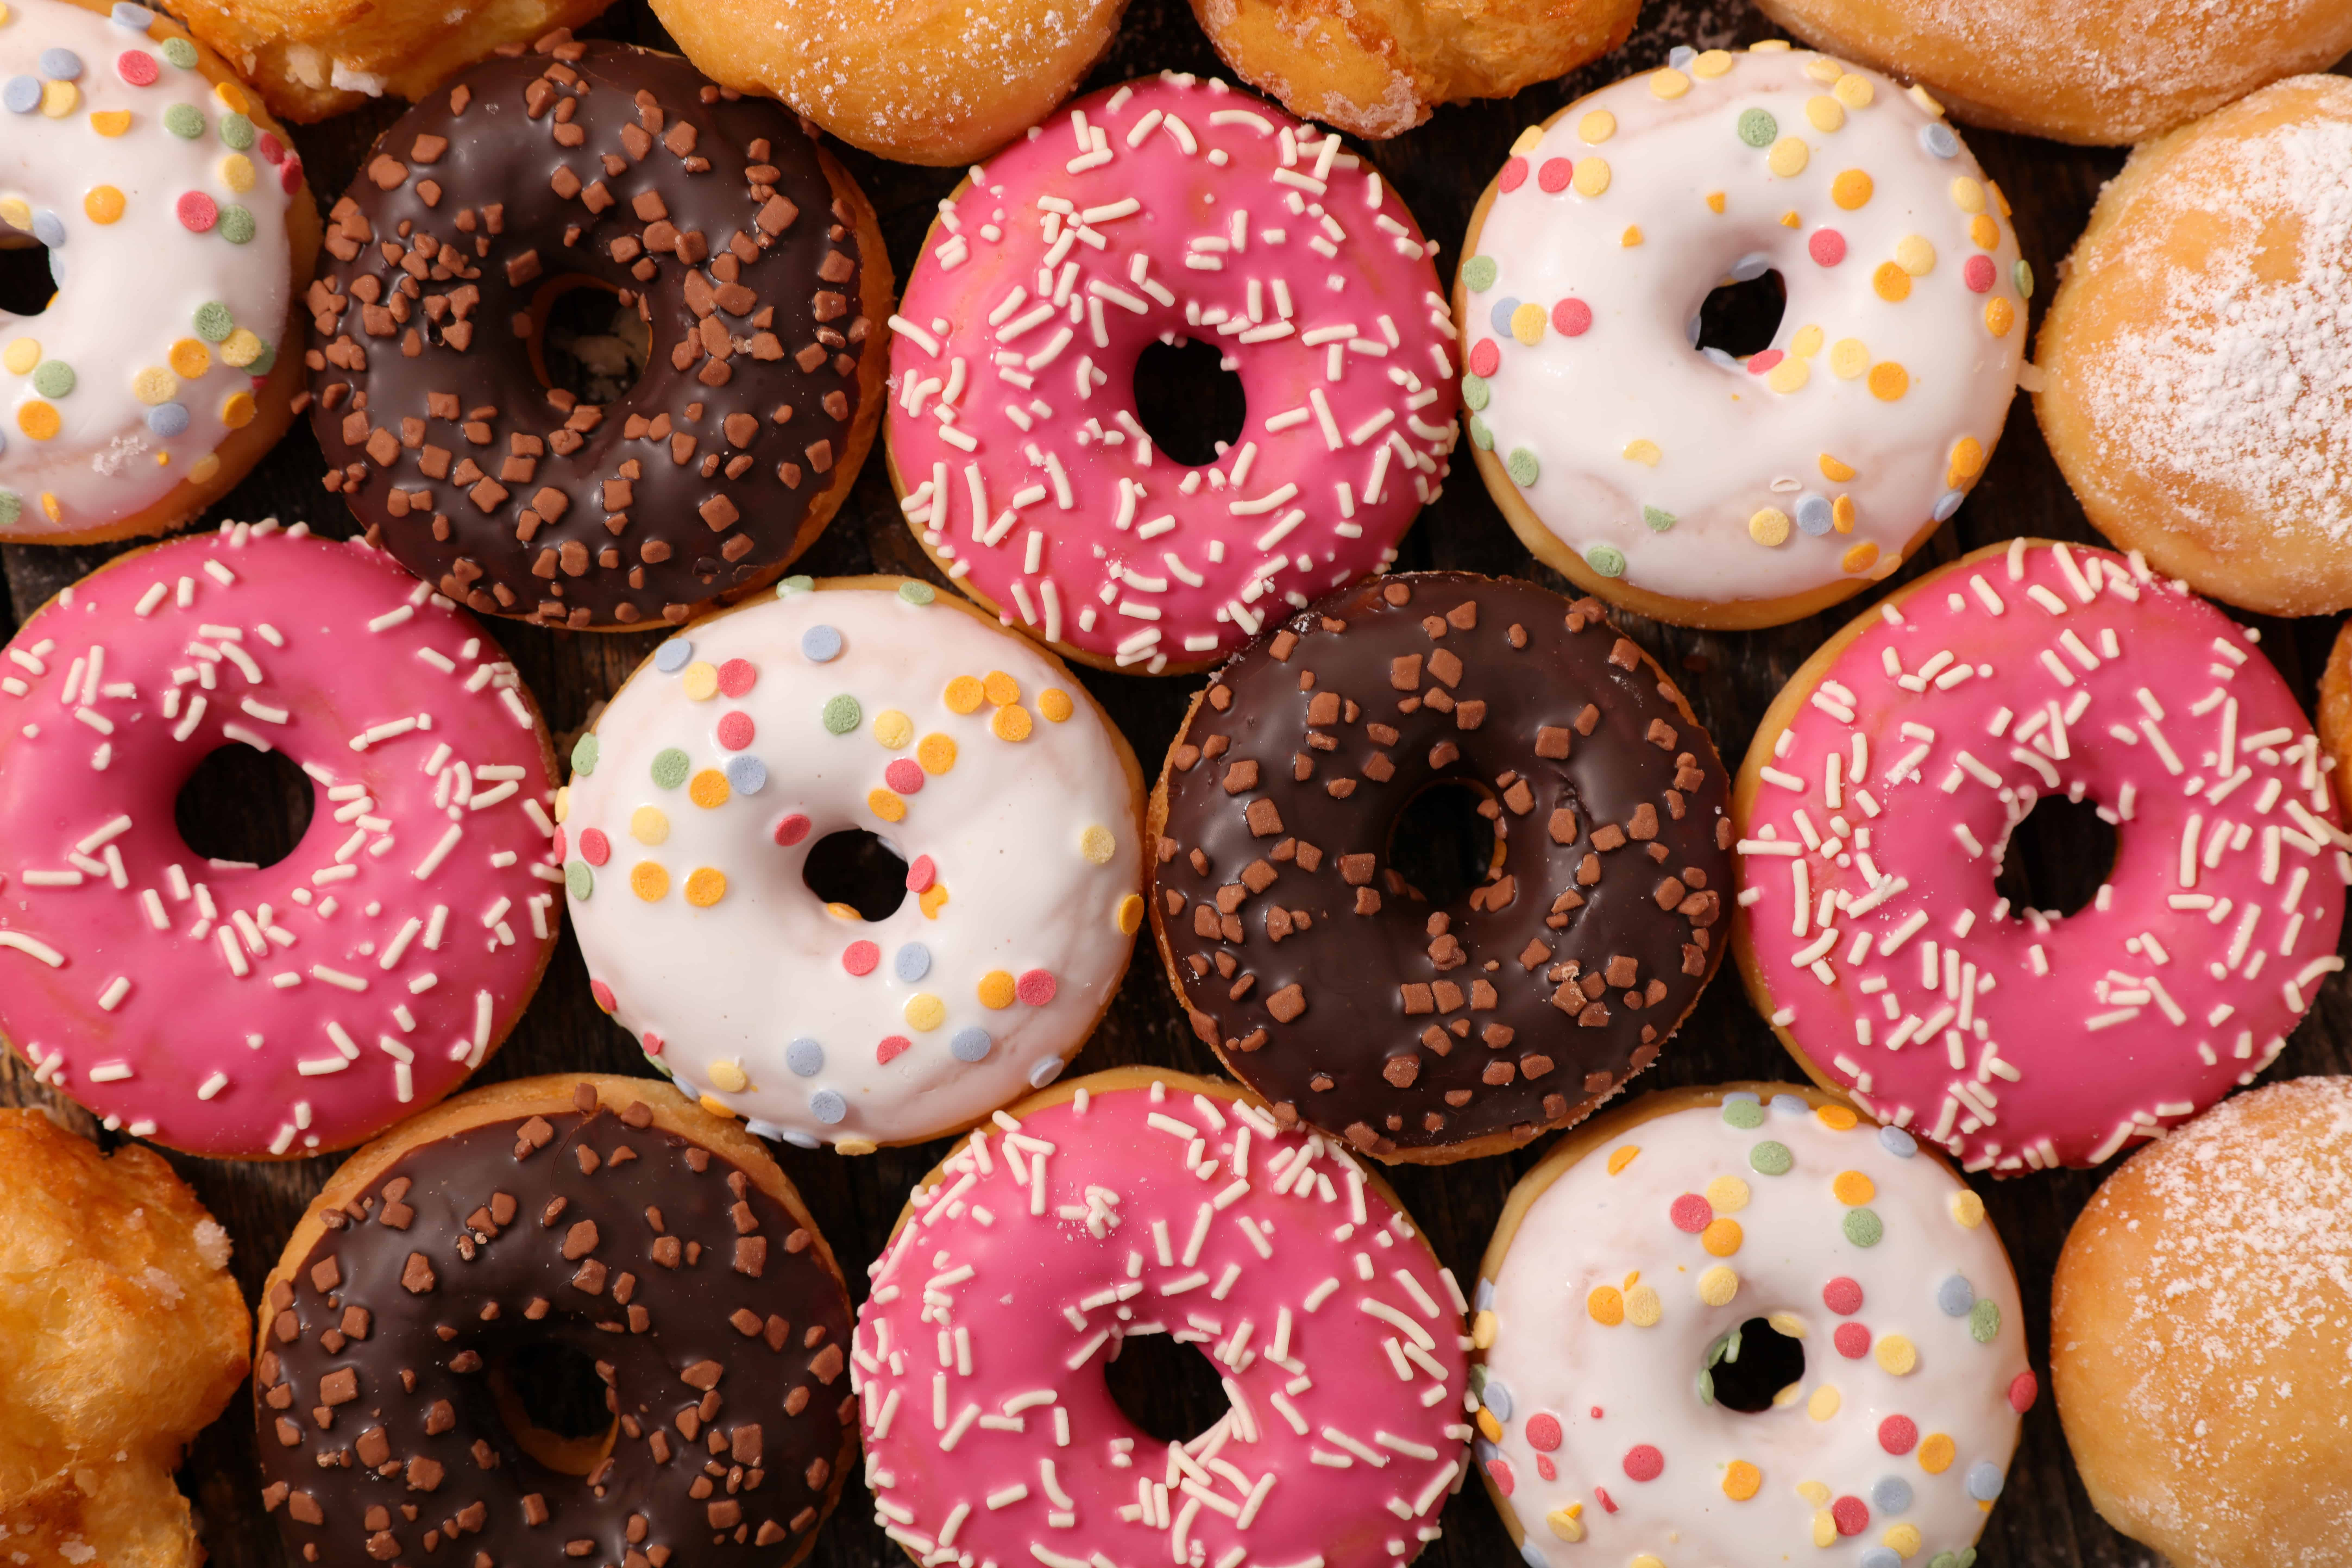 foods that start with d - assorted glazed donuts